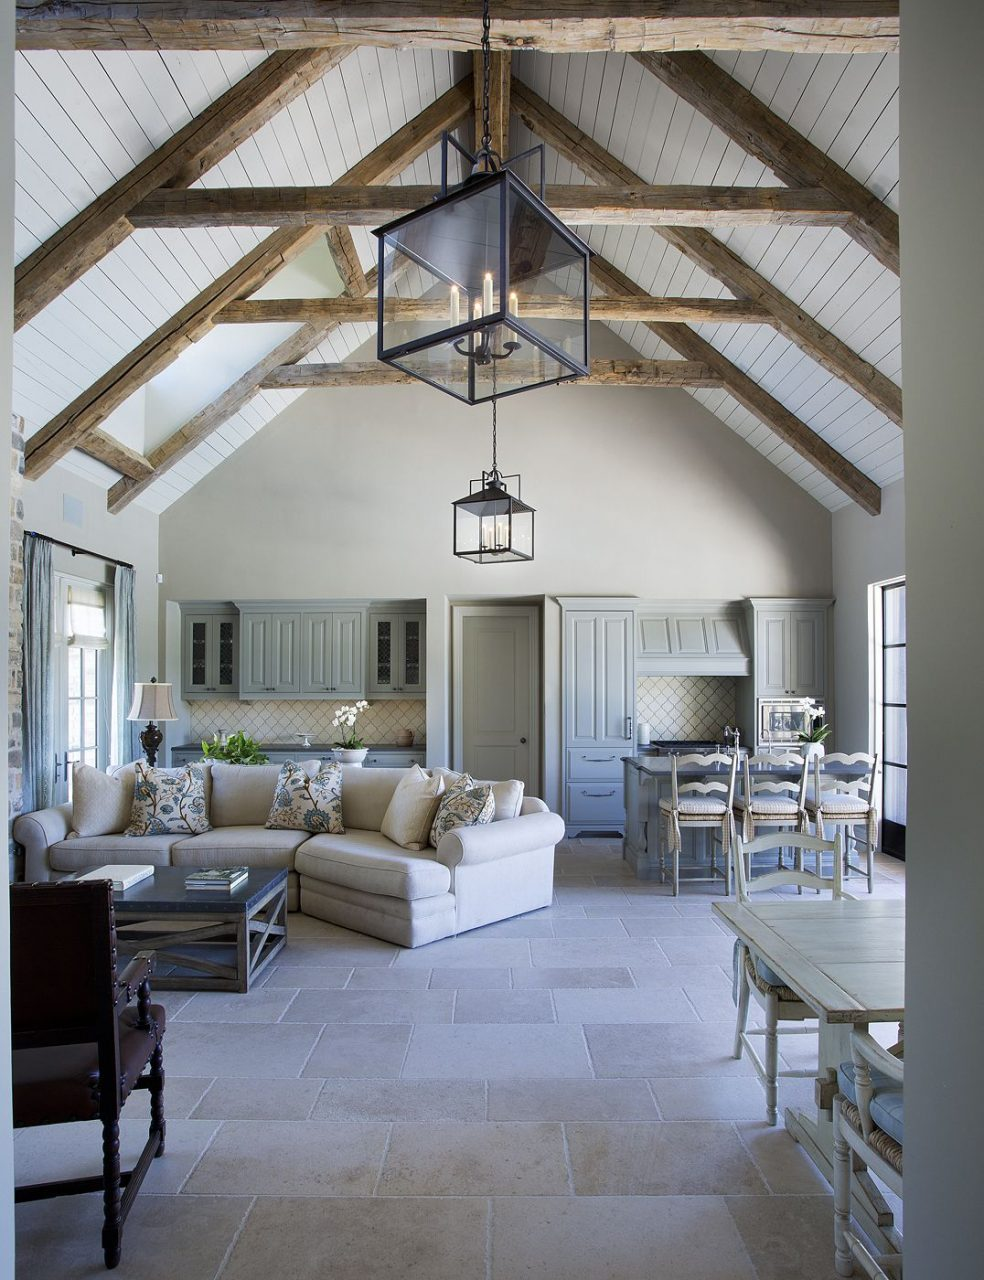 Cathedral Ceilings With Exposed Beams White Washed Bright Interior